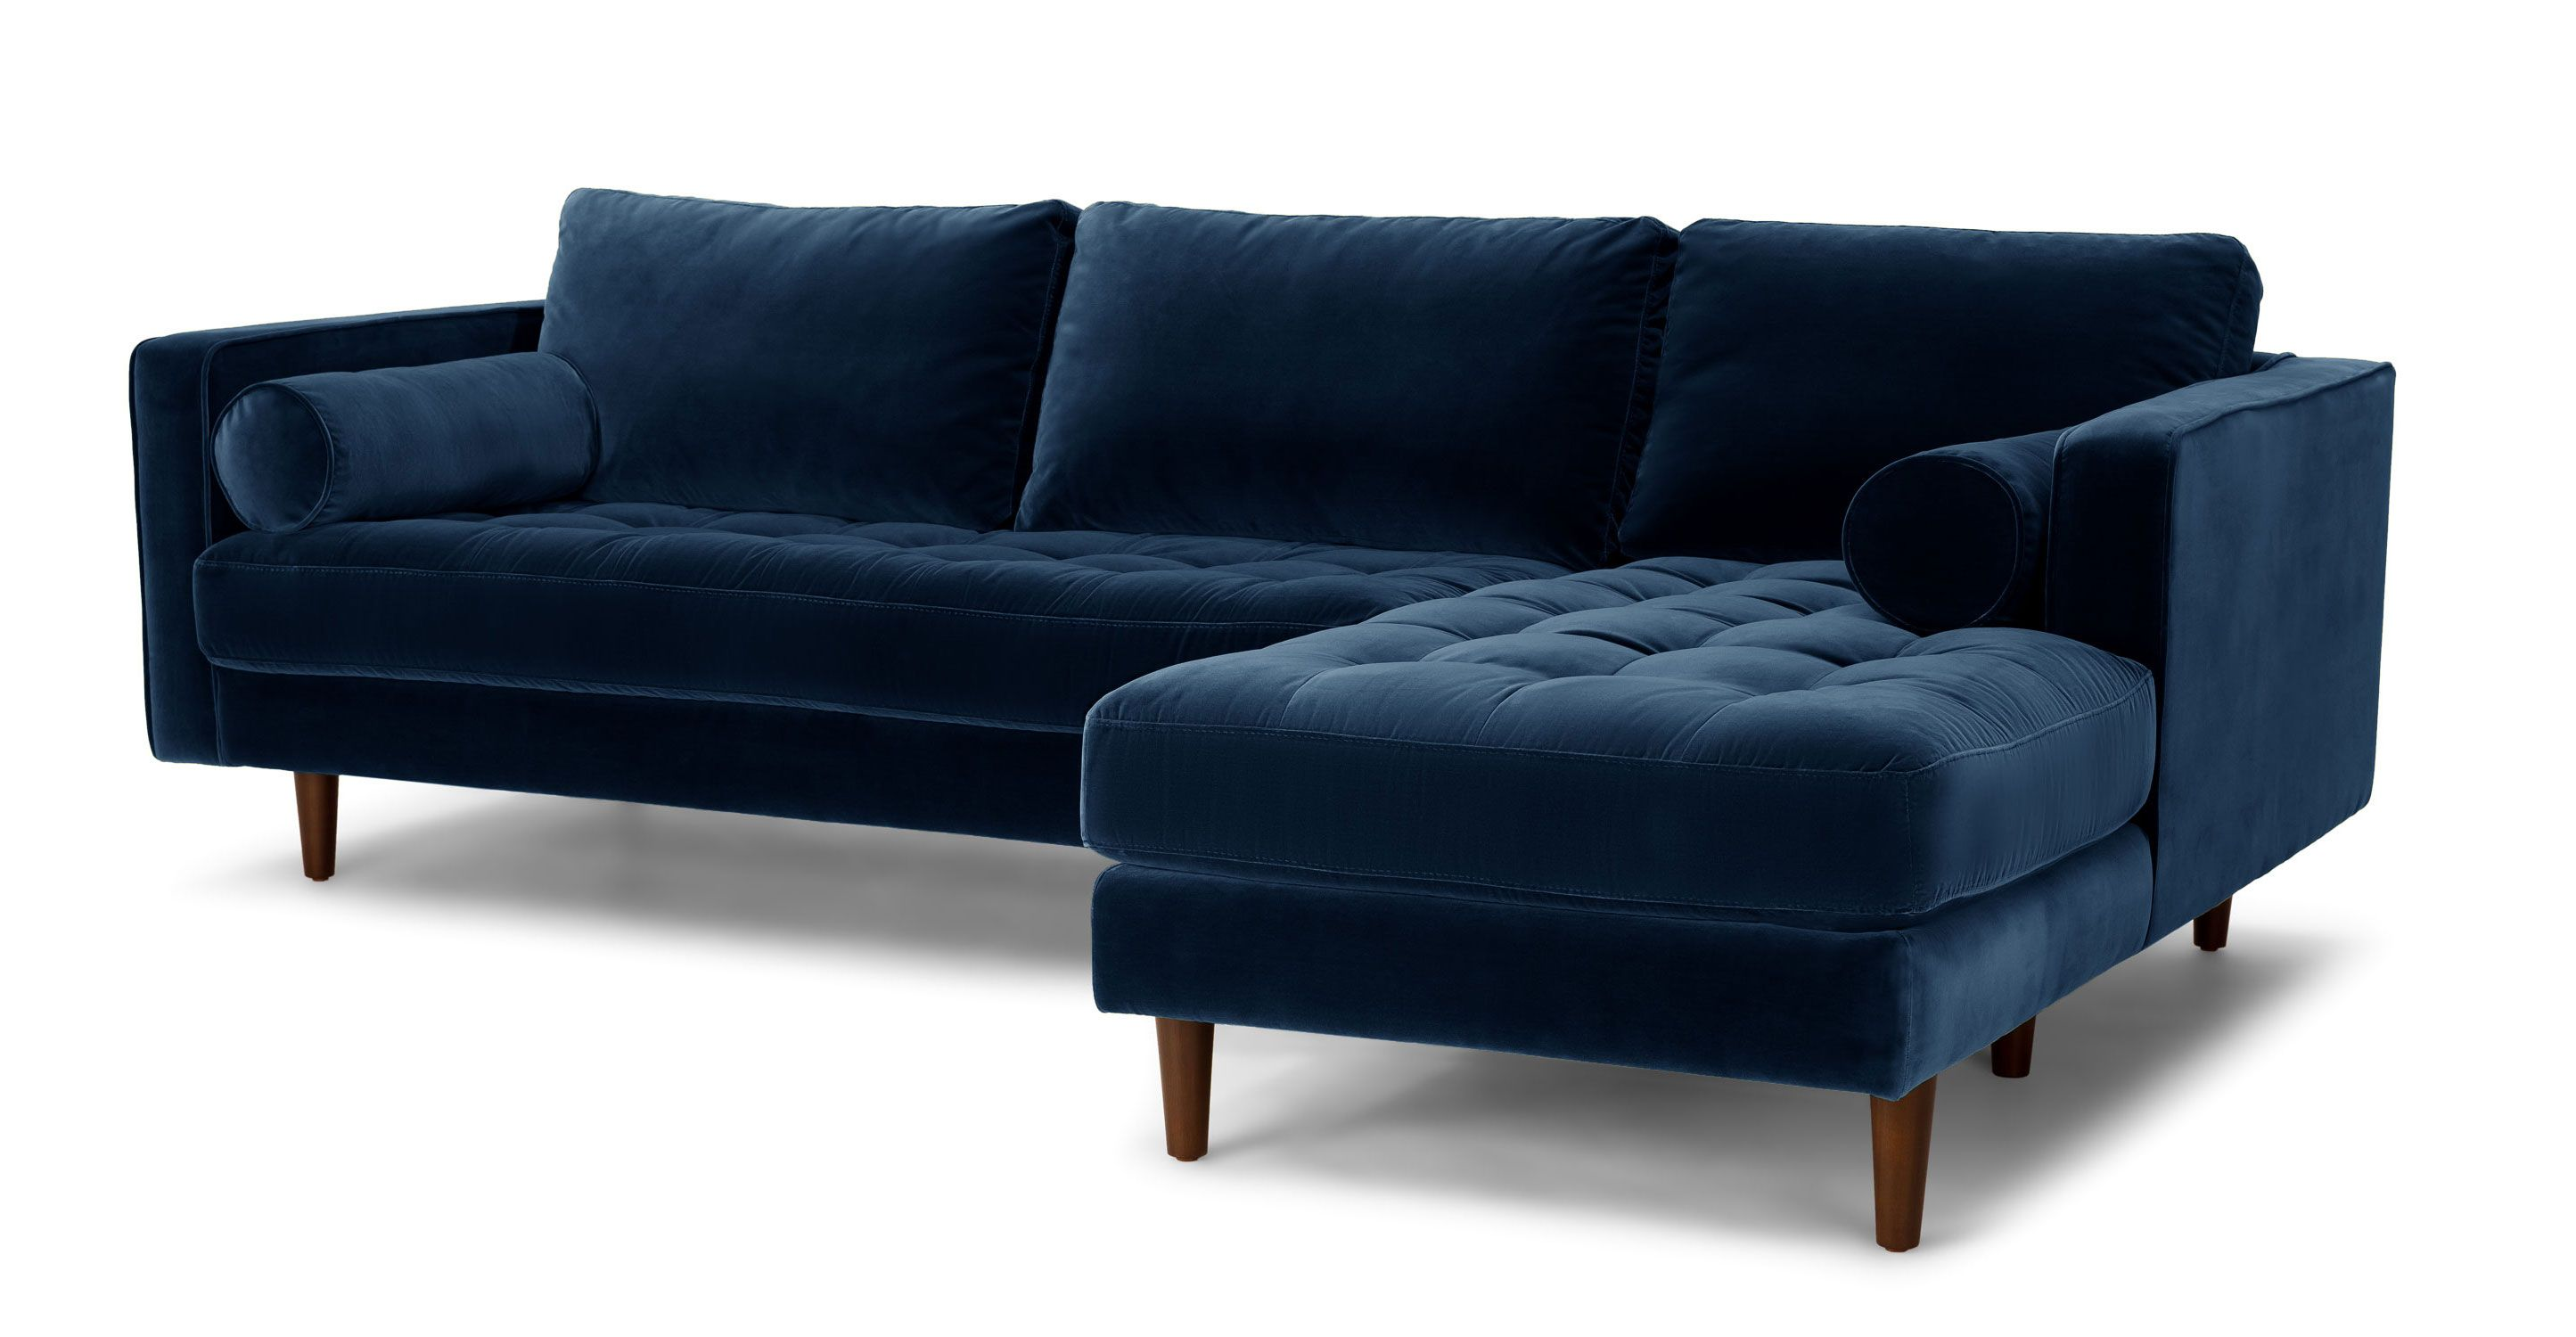 sofas curved small modern living room sofa sectional couch